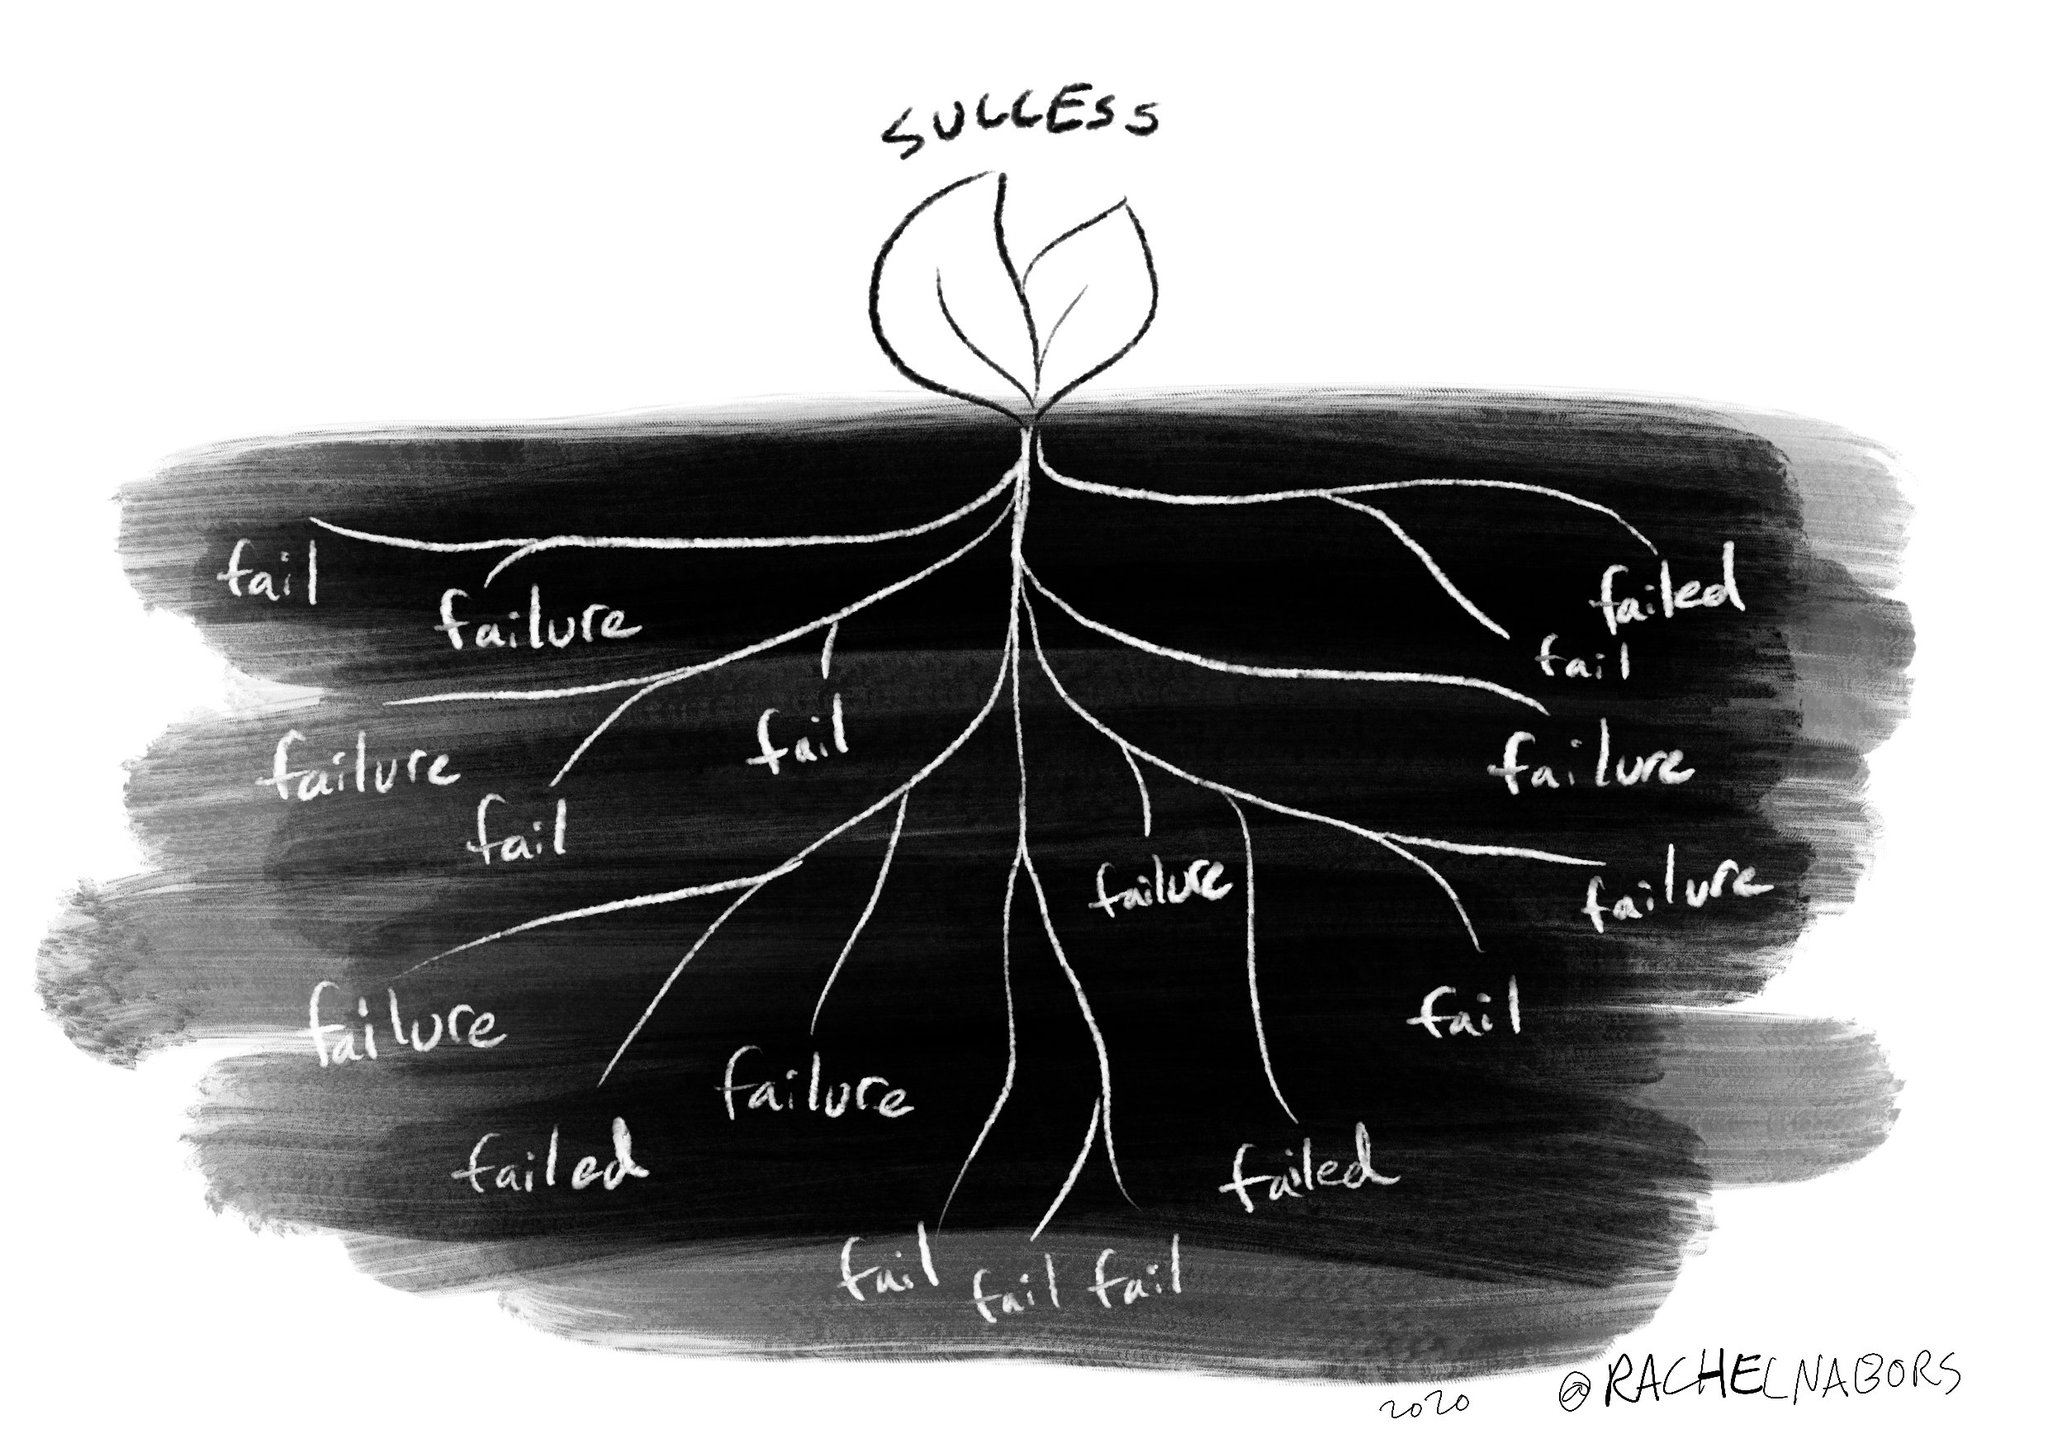 Drawing of a plant with its roots, illustrating that a flower of success has tons of roots of failure